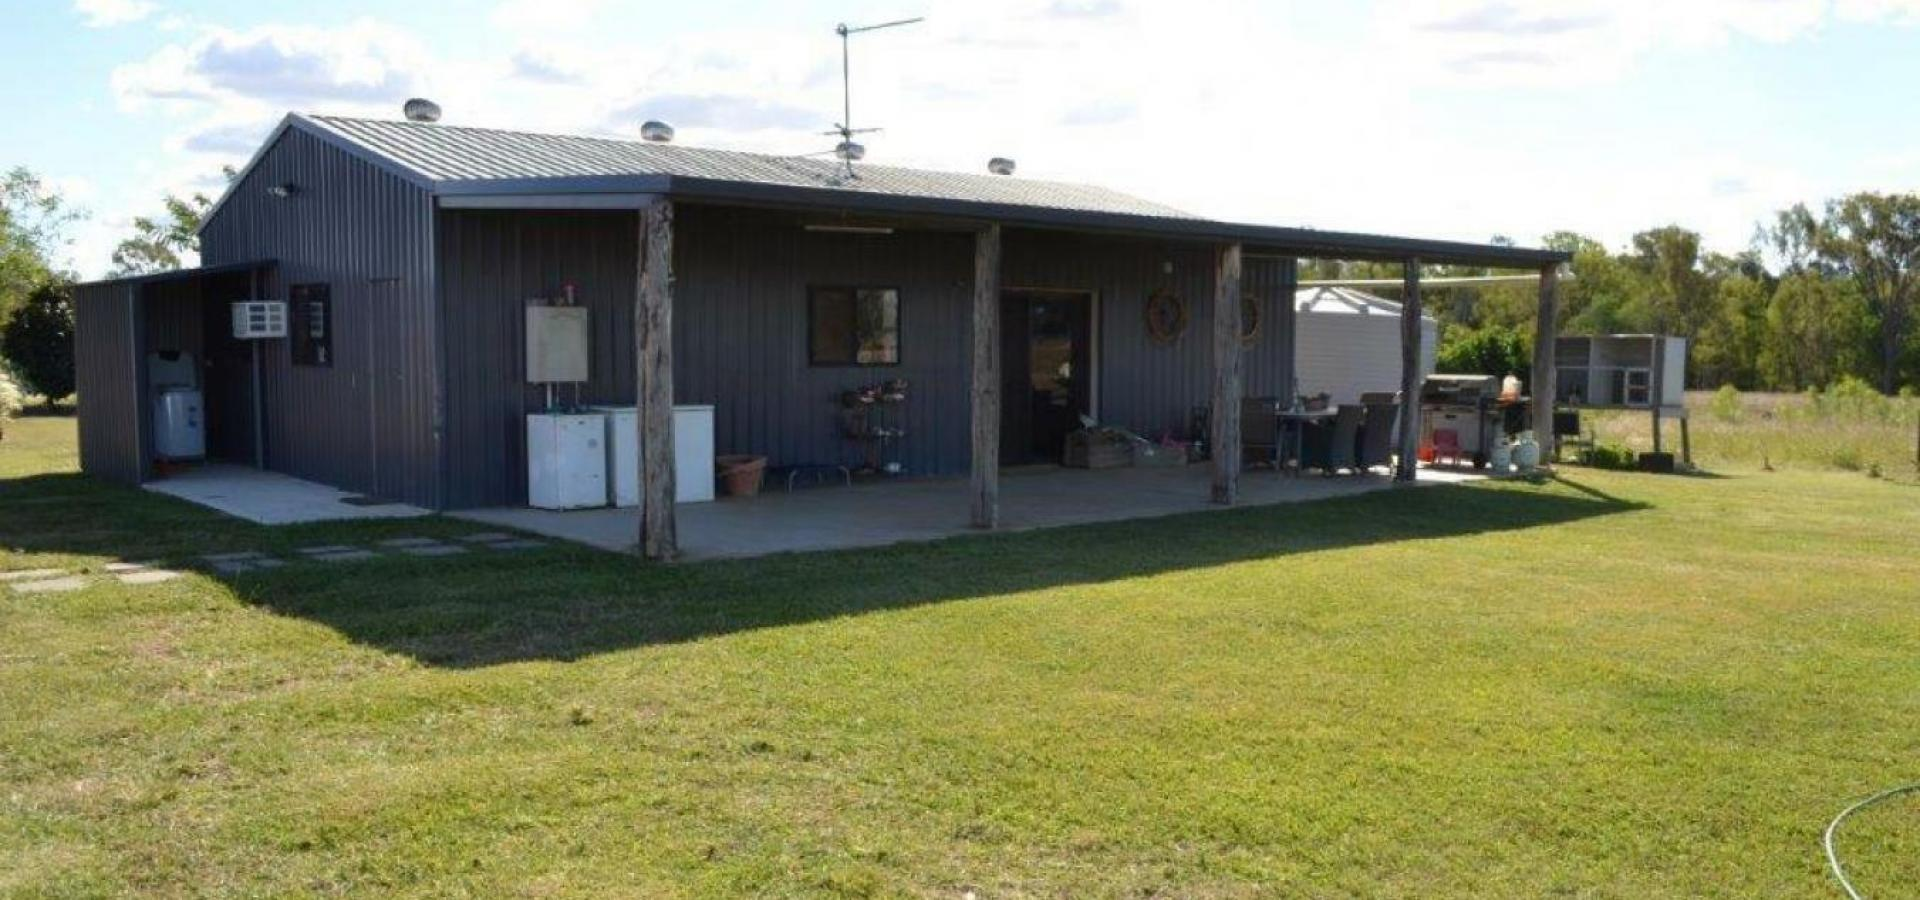 Town and Country Life - An Exciting Opportunity for Acreage Lifestyle 7.28ha (approx. 18 acres) Alton Downs